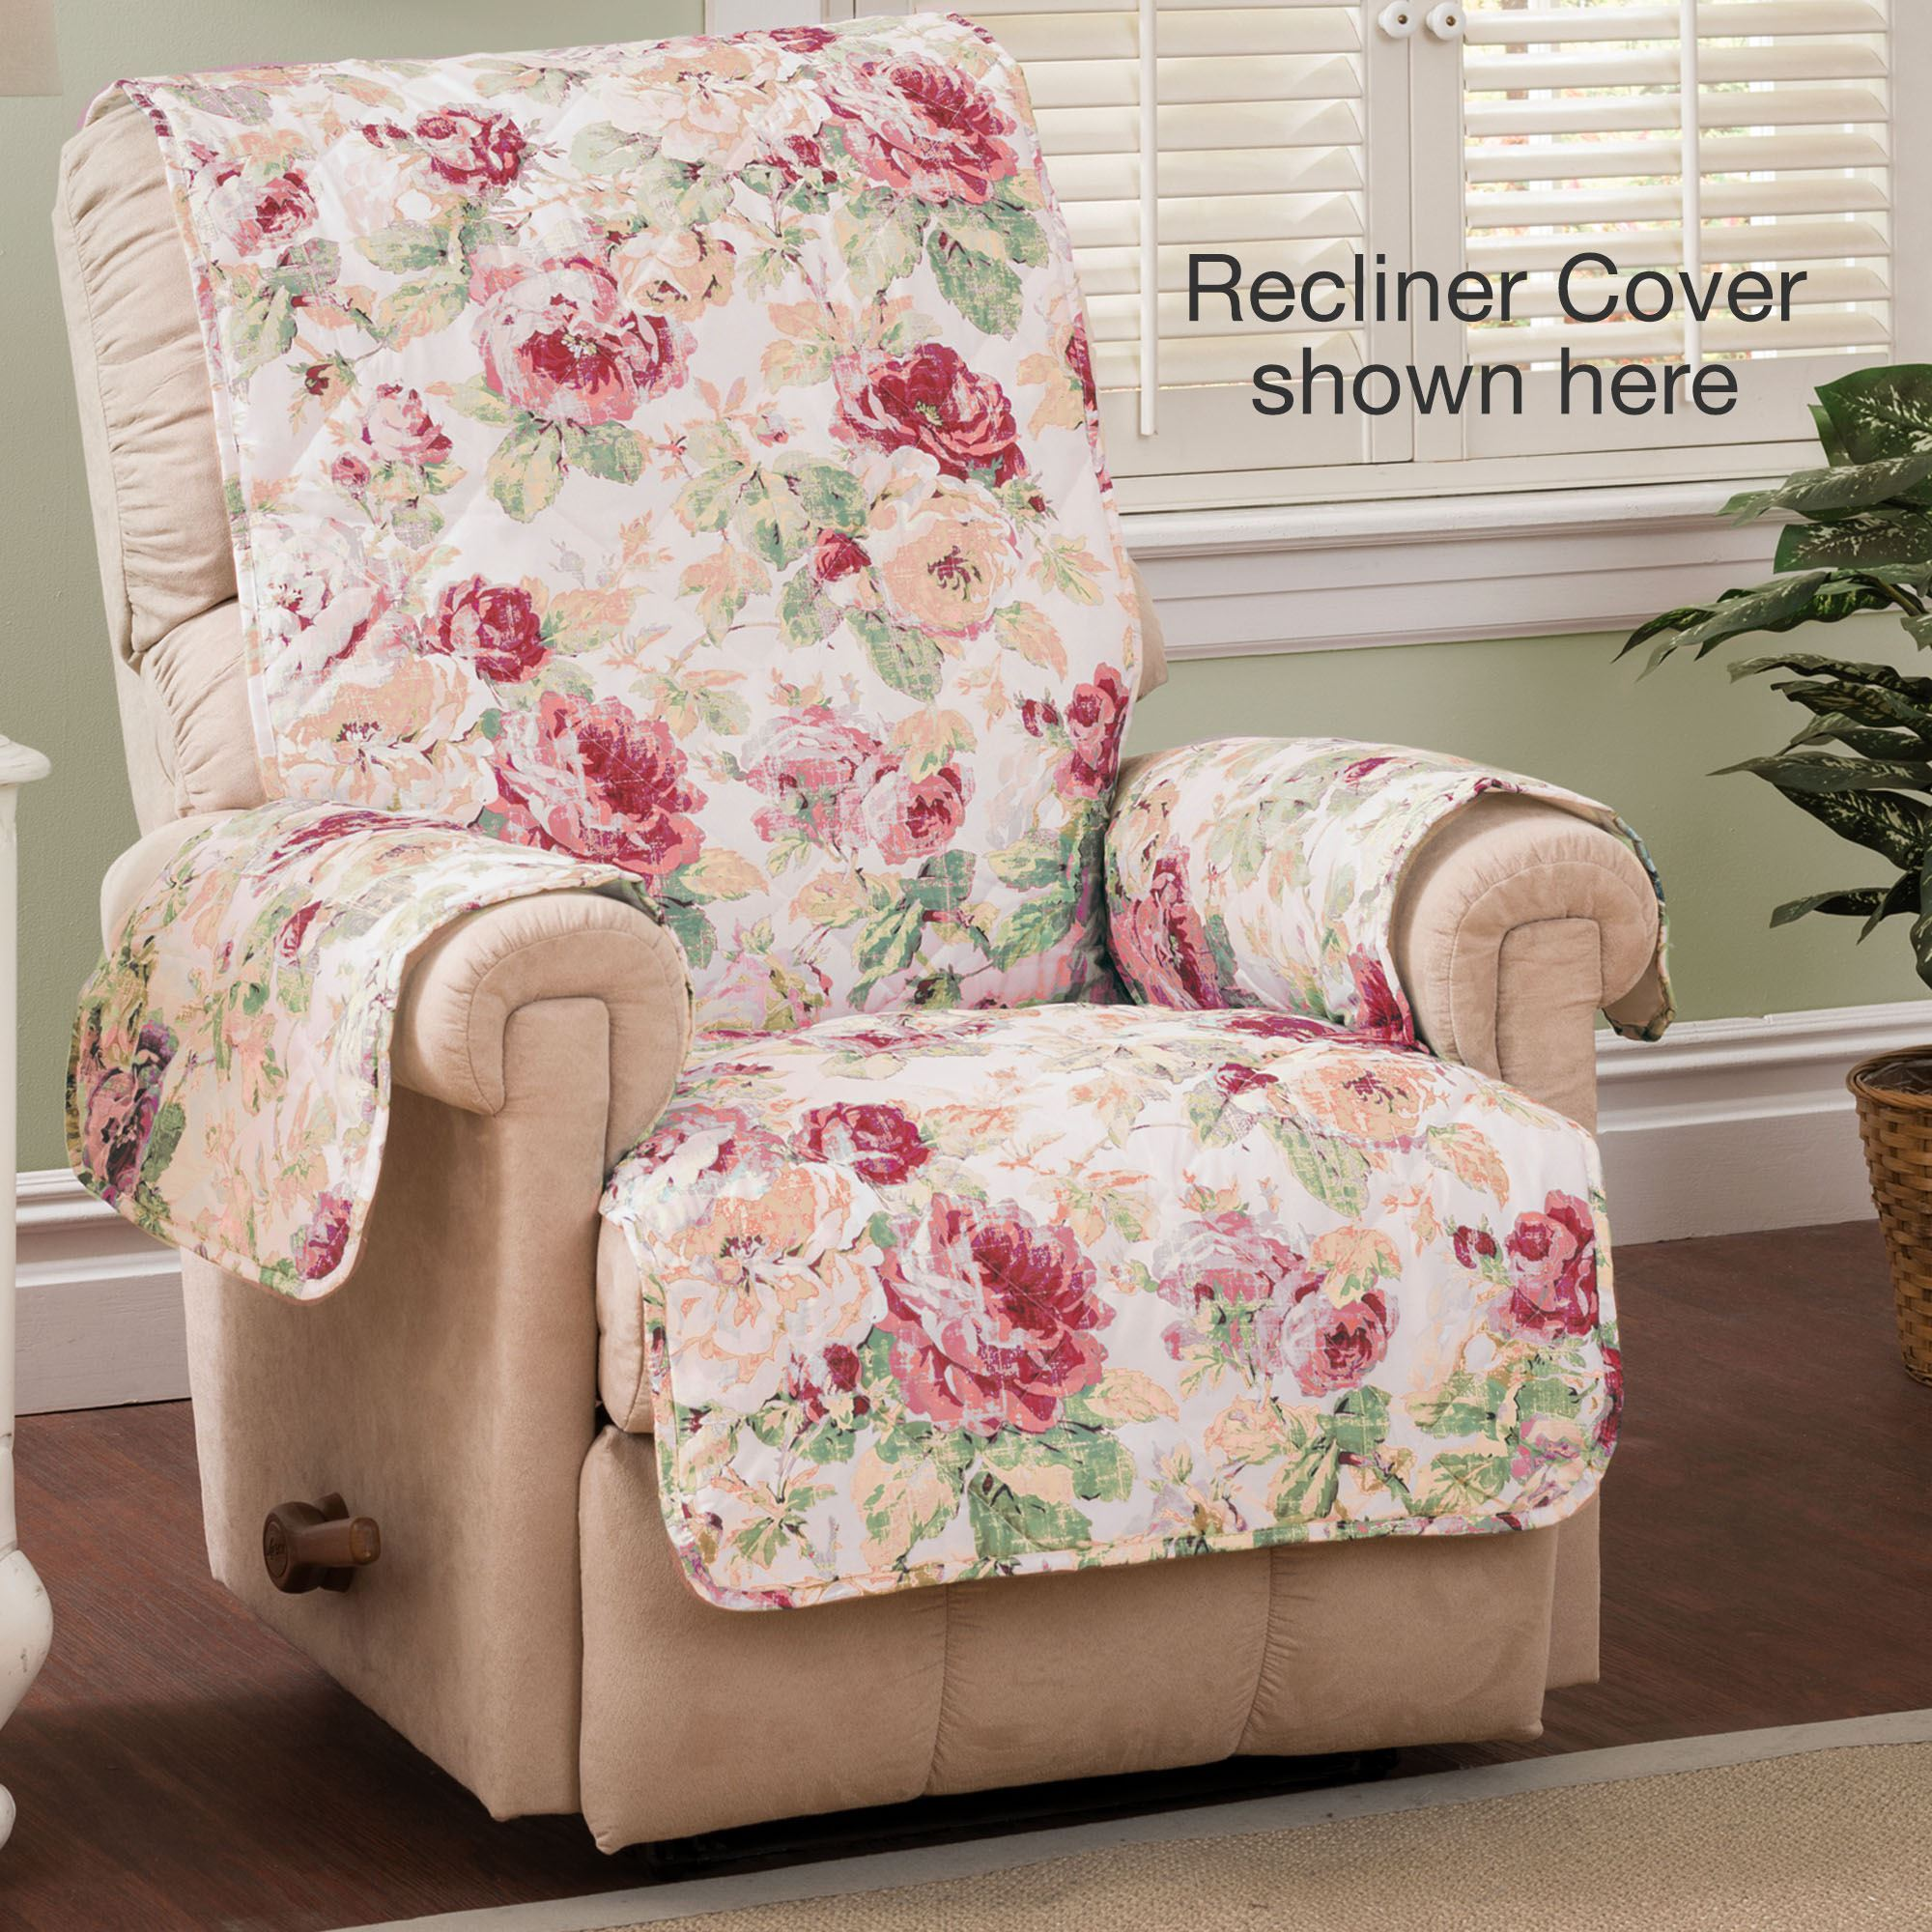 english floral tea rose quilted furniture protectors rh touchofclass com Korean Tea Chair Tea Table and Chairs